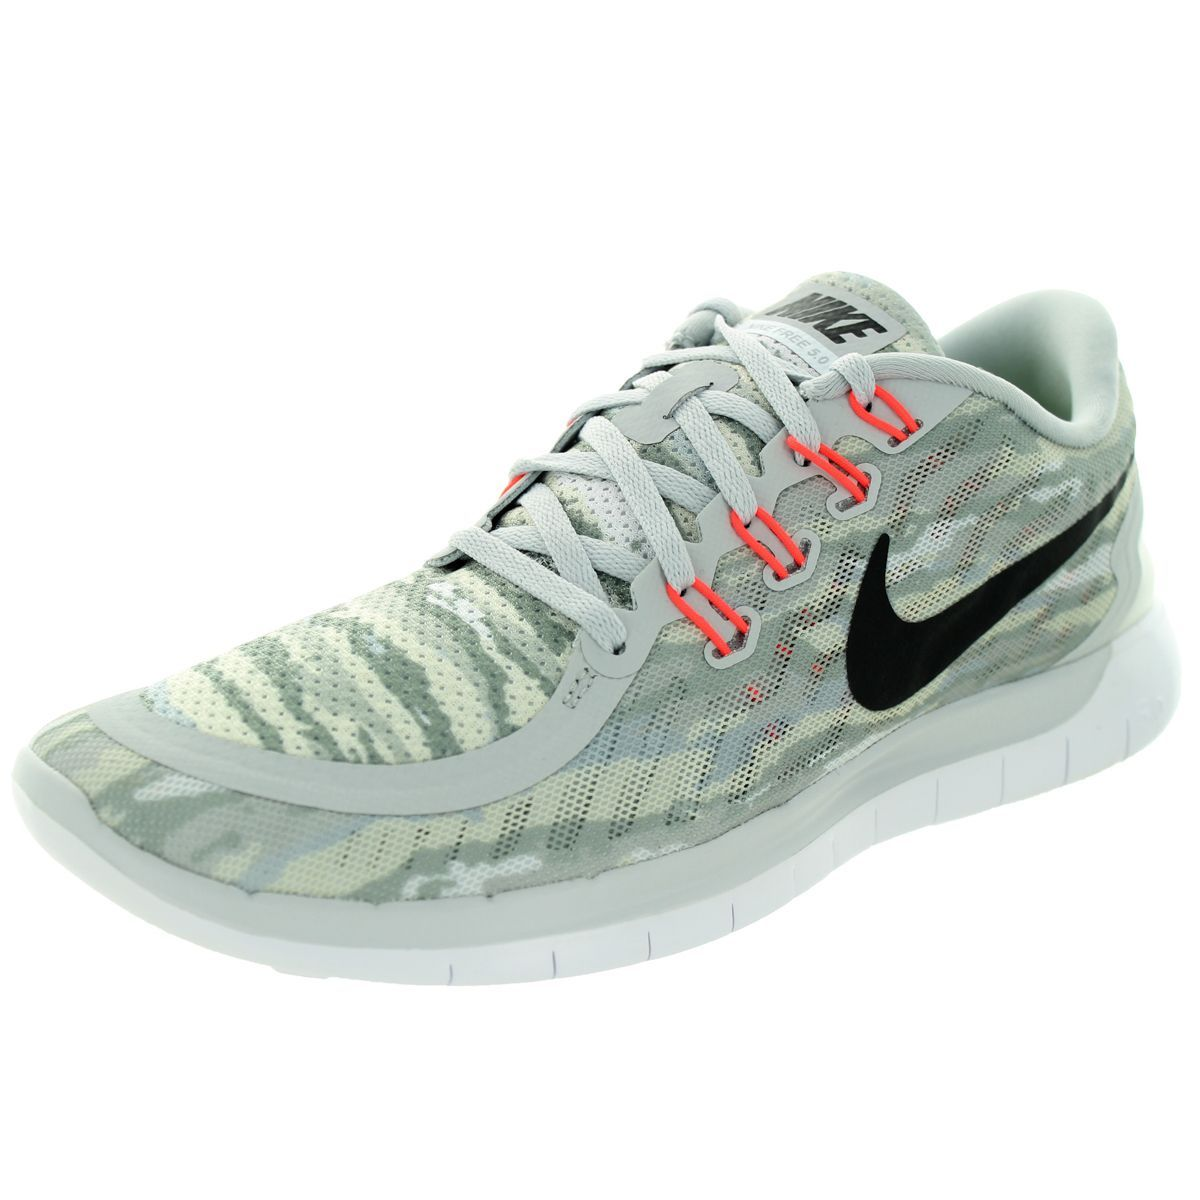 new styles 3b641 6a3a8 Nike Men s Free 5.0 Print Pure Platinum Black Hot Lava Running Shoe